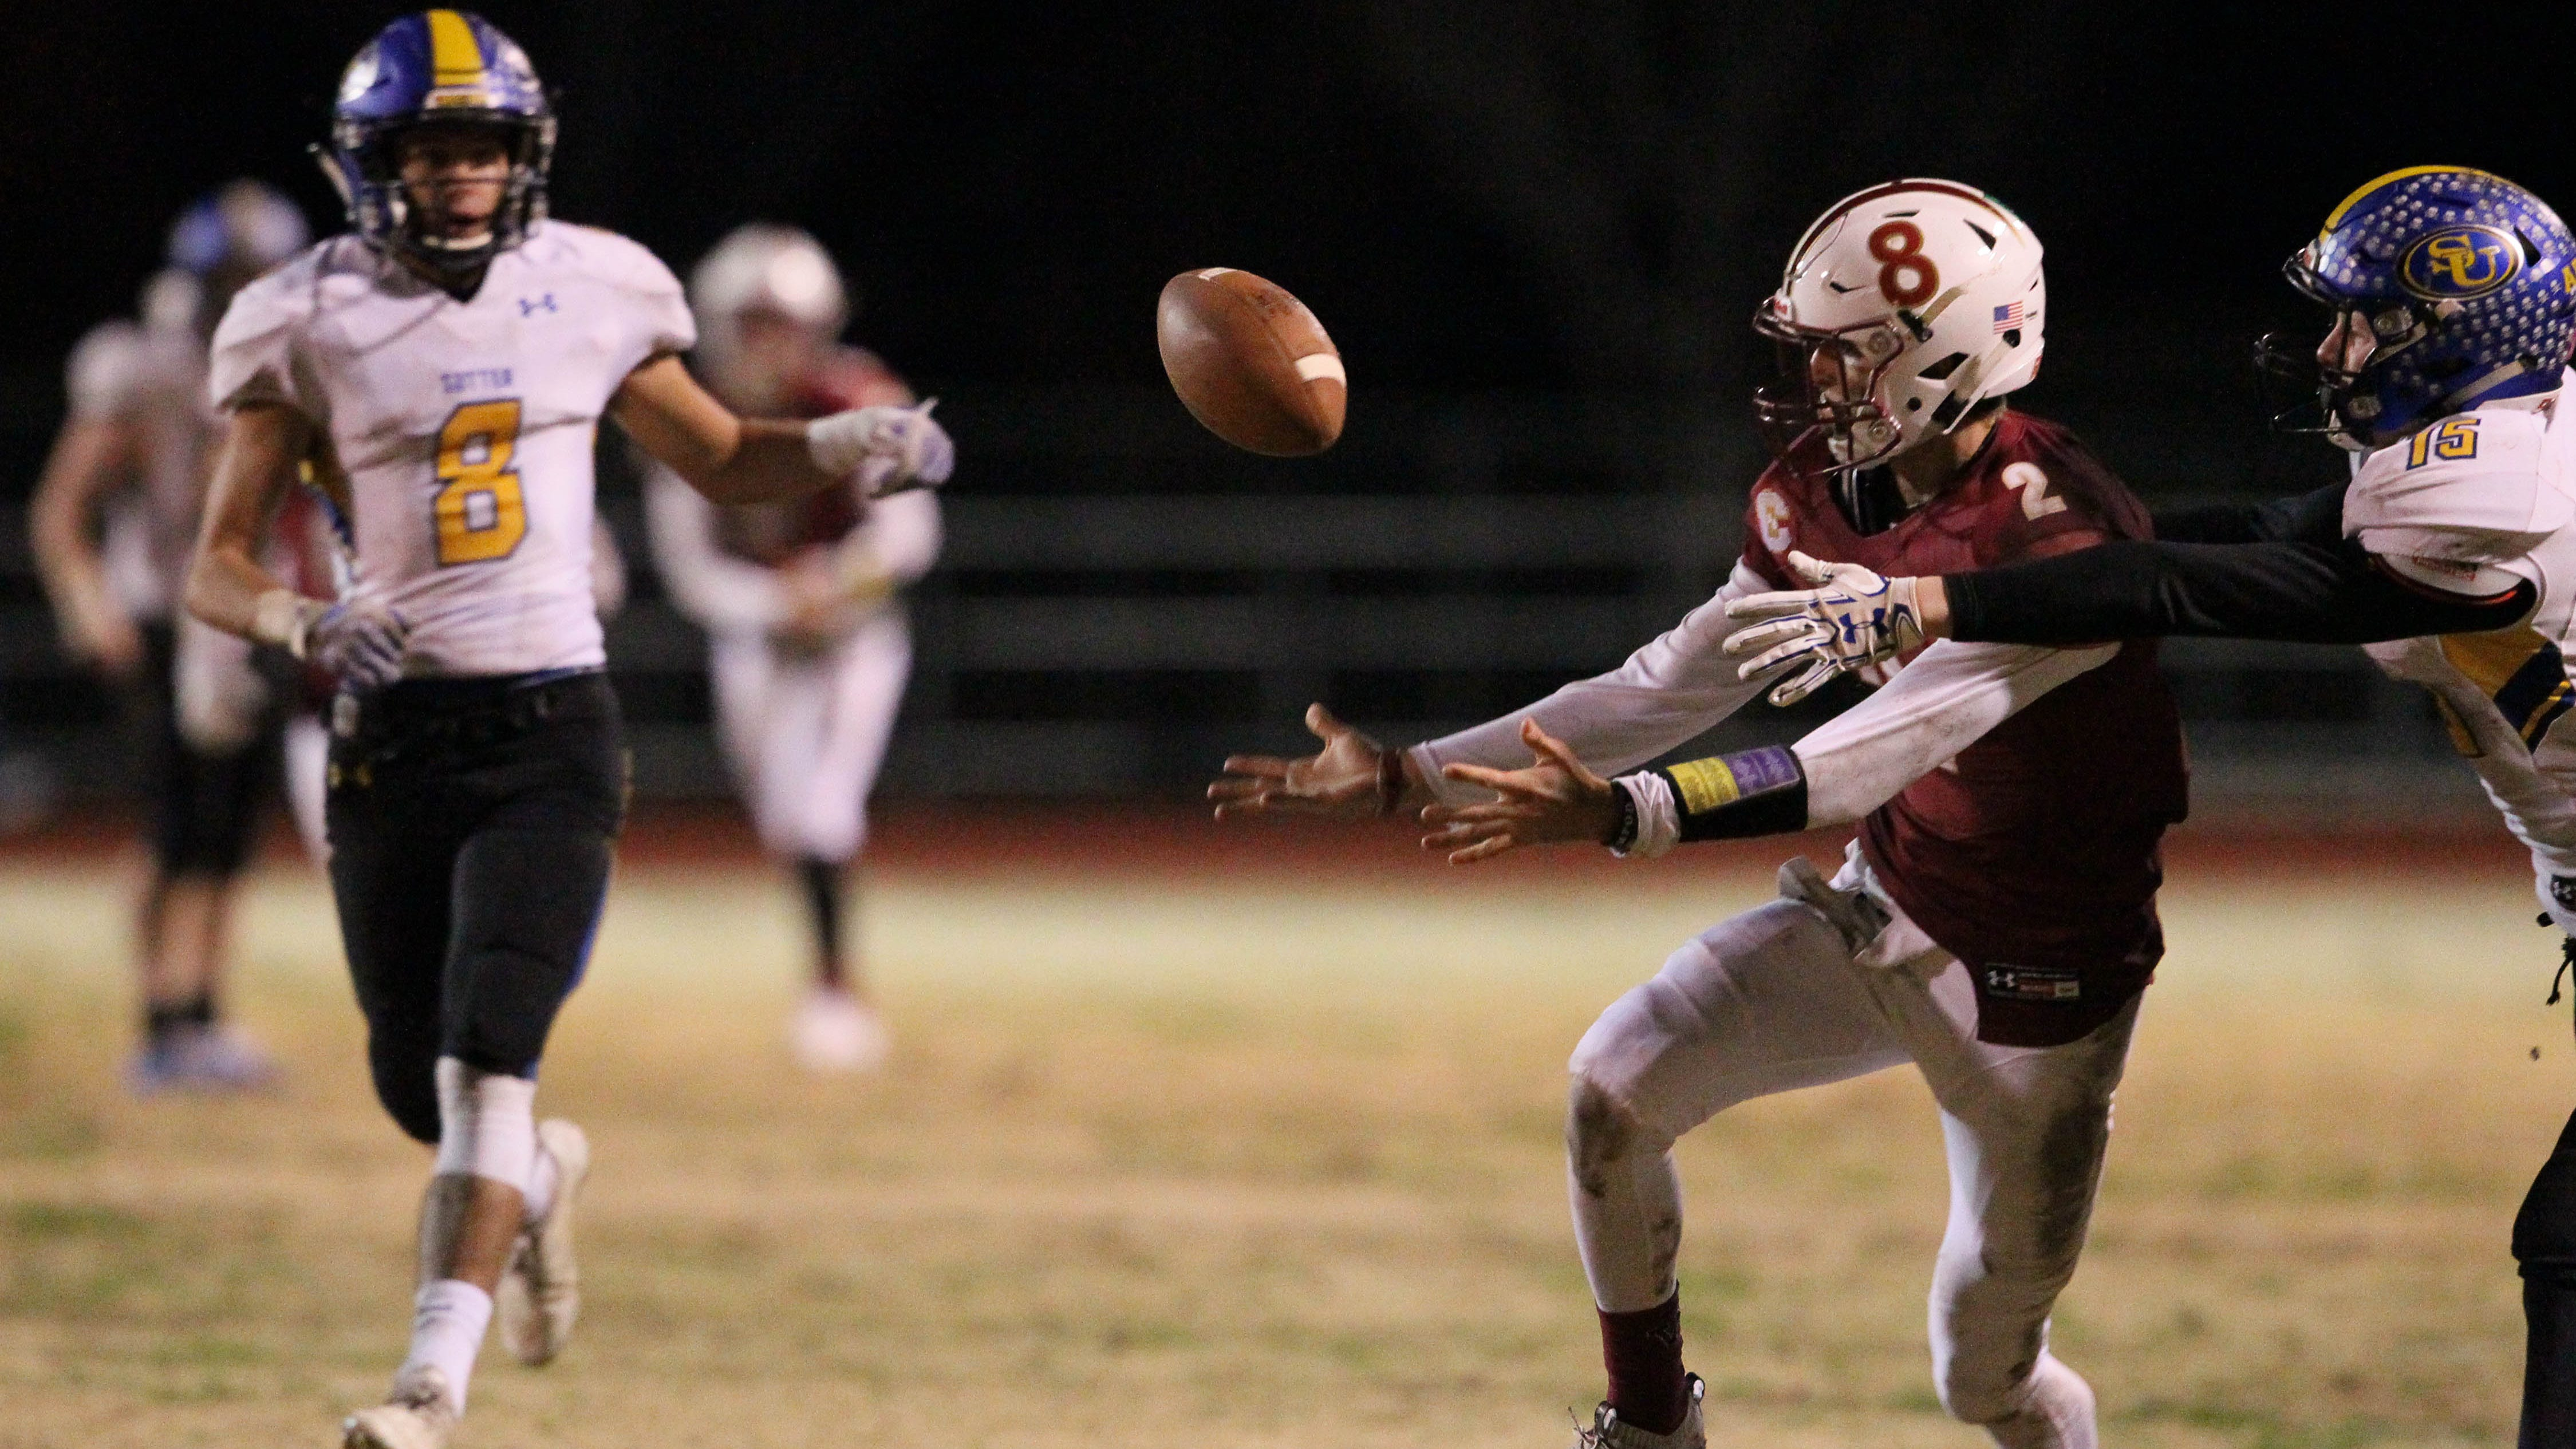 West Valley, Devin Low (2), reaches out for a pass in the 1st quarter against Sutter on Saturday, Dec. 1.